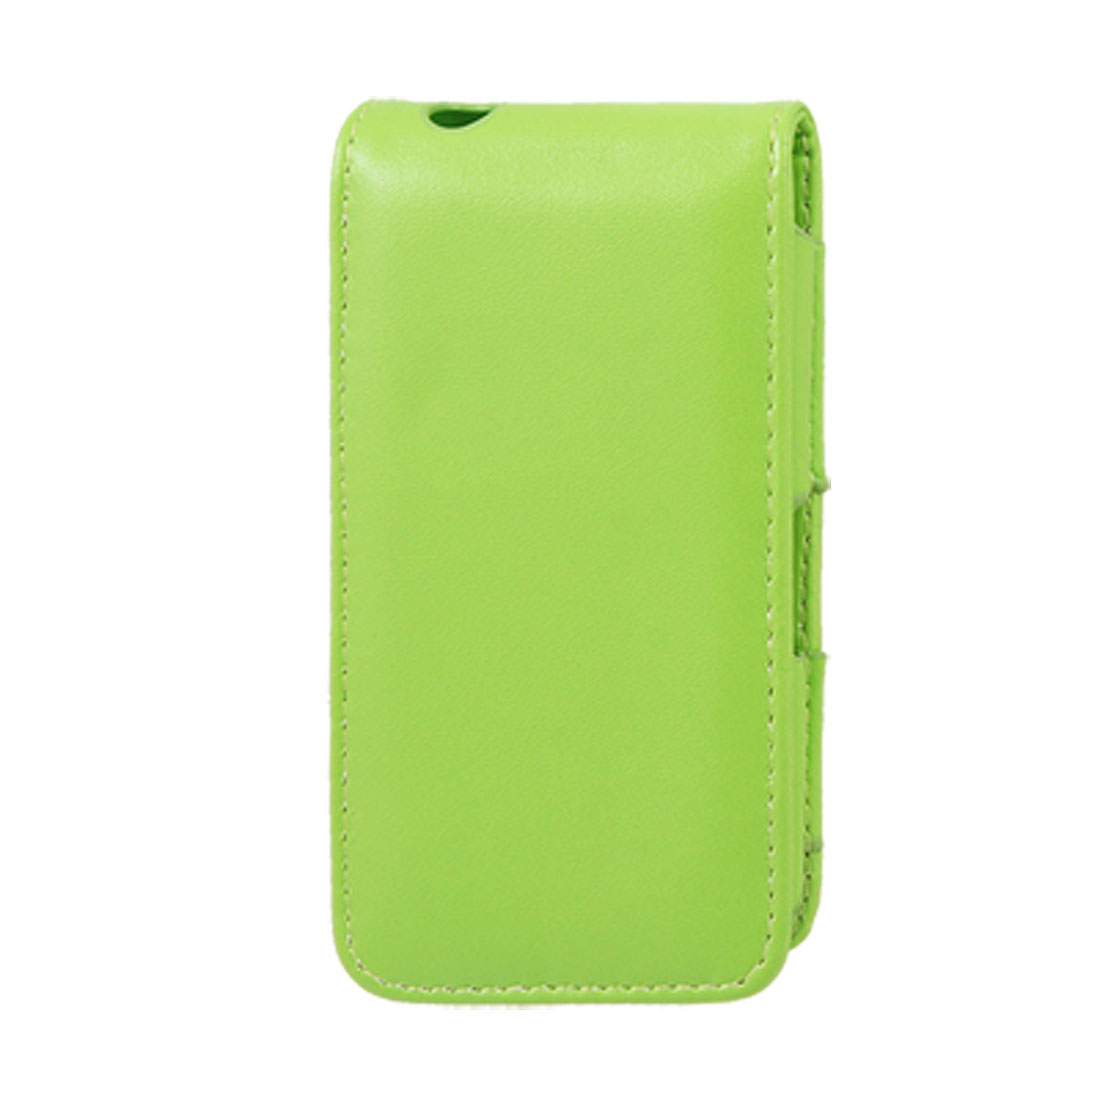 Magnetic Flip Green Faux Leather Pouch for iPhone 4 4G